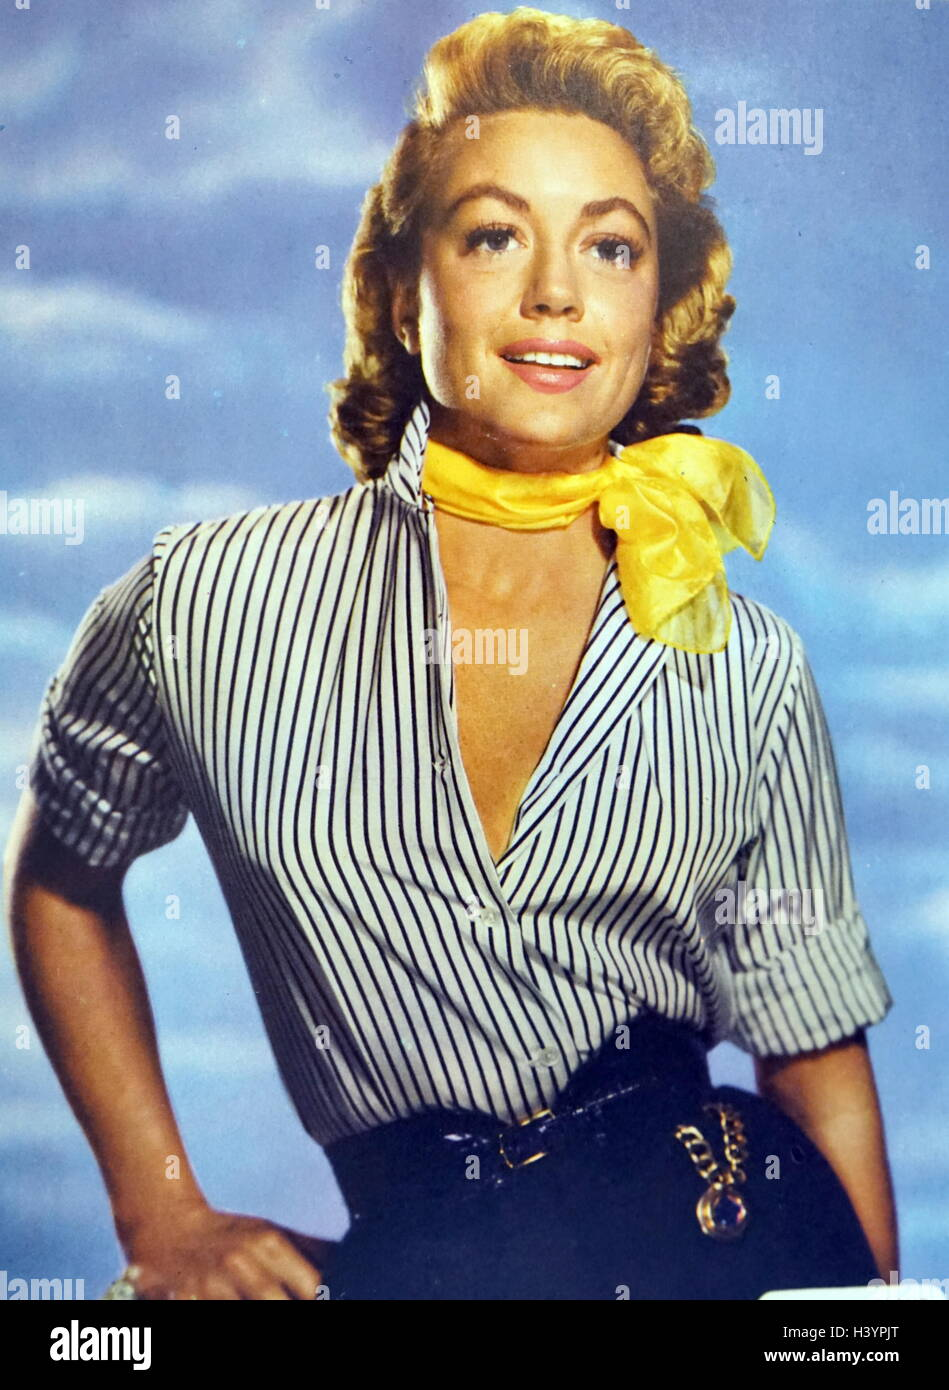 Photograph of Dorothy Malone (1925-) an American actress. Dated 20th Century - Stock Image